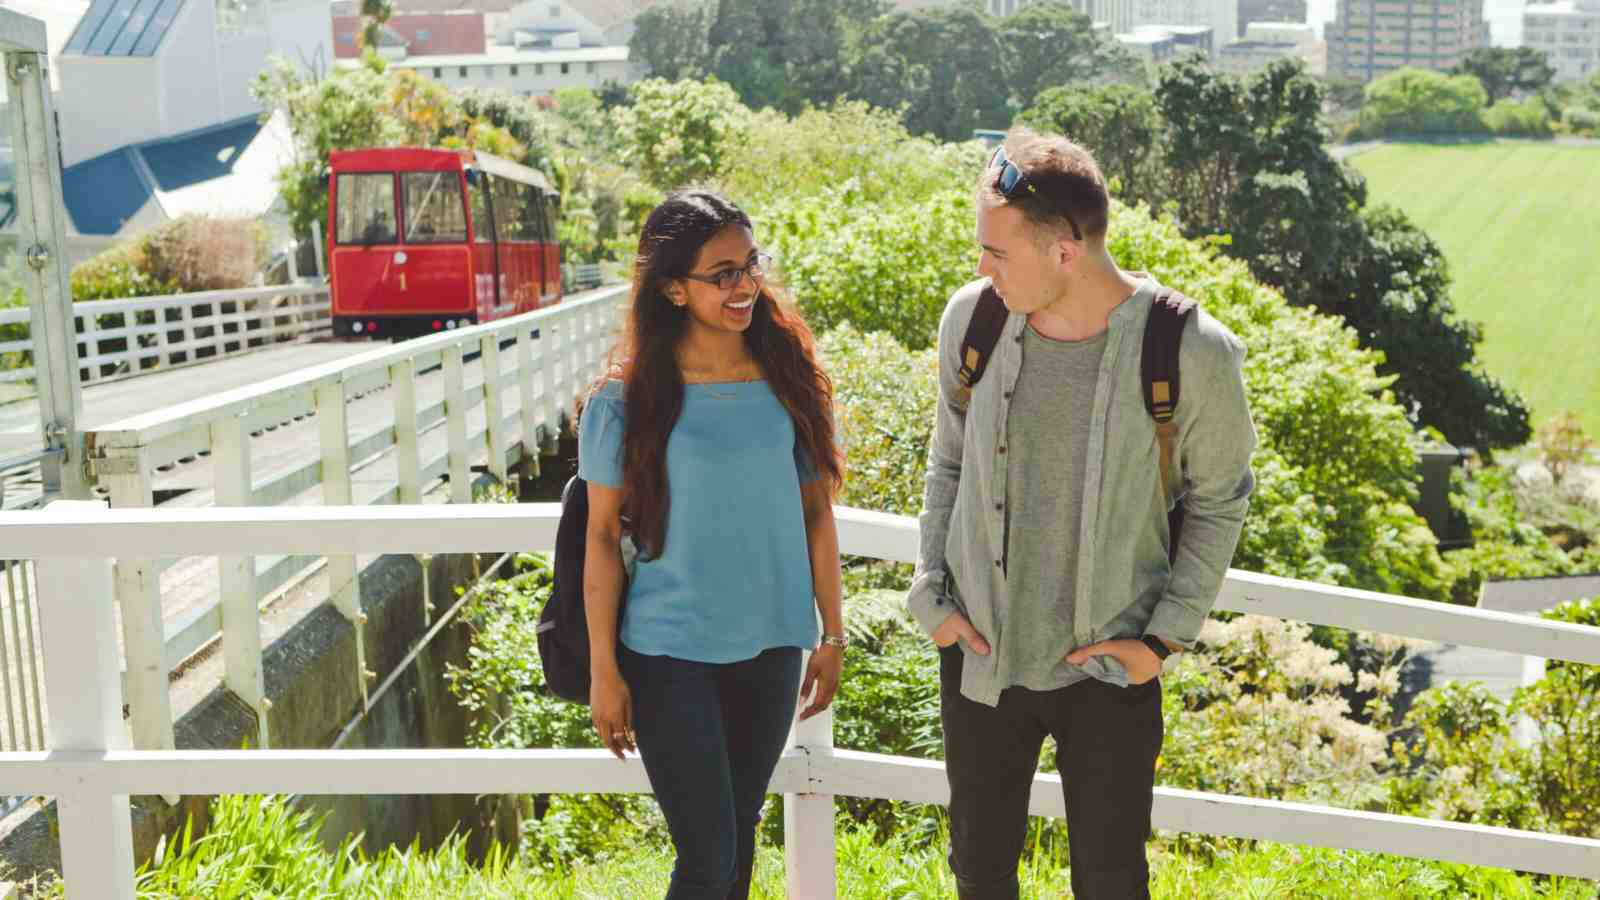 Two university students standing and talking near the cable car in Wellington.